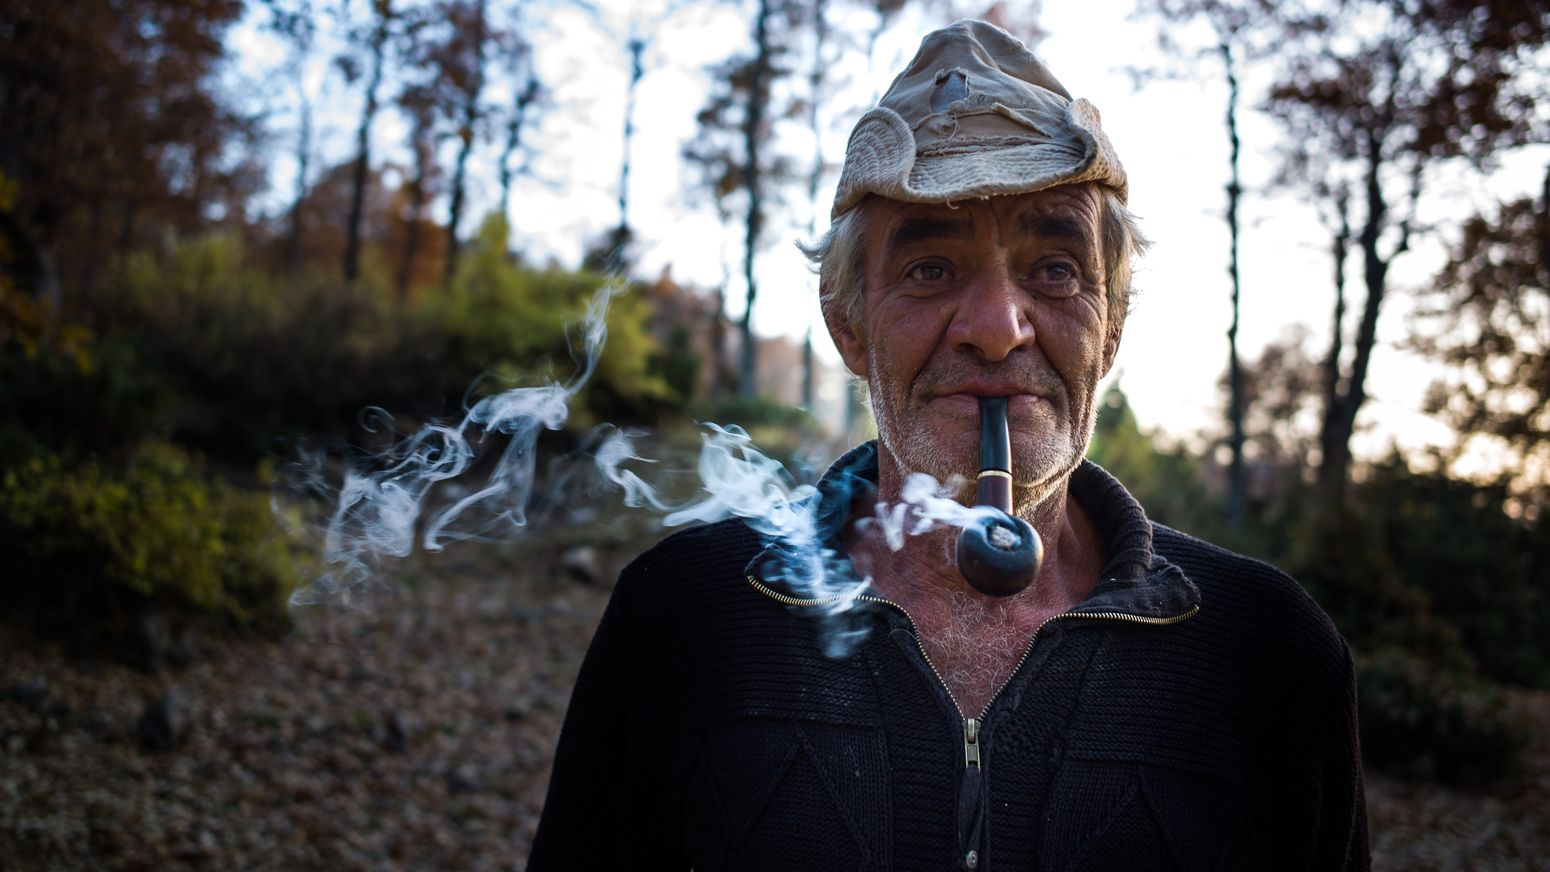 Picturing Individuality he is what he is. A man who decided to leave everything behind and live in the mountains. Smoking Pipe Smoking Pipe Man Woods Farmer Agriculture Nature Portrait Portraiture The Portraitist - 2015 EyeEm Awards Old But Awesome